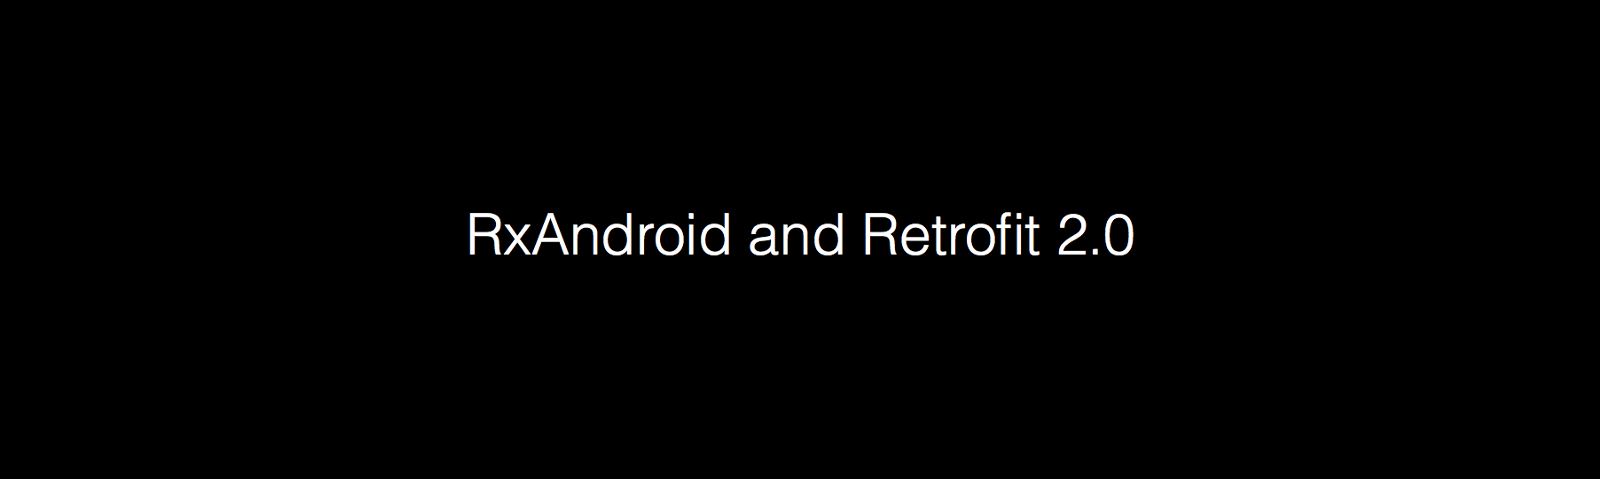 RxAndroid and Retrofit 2 0